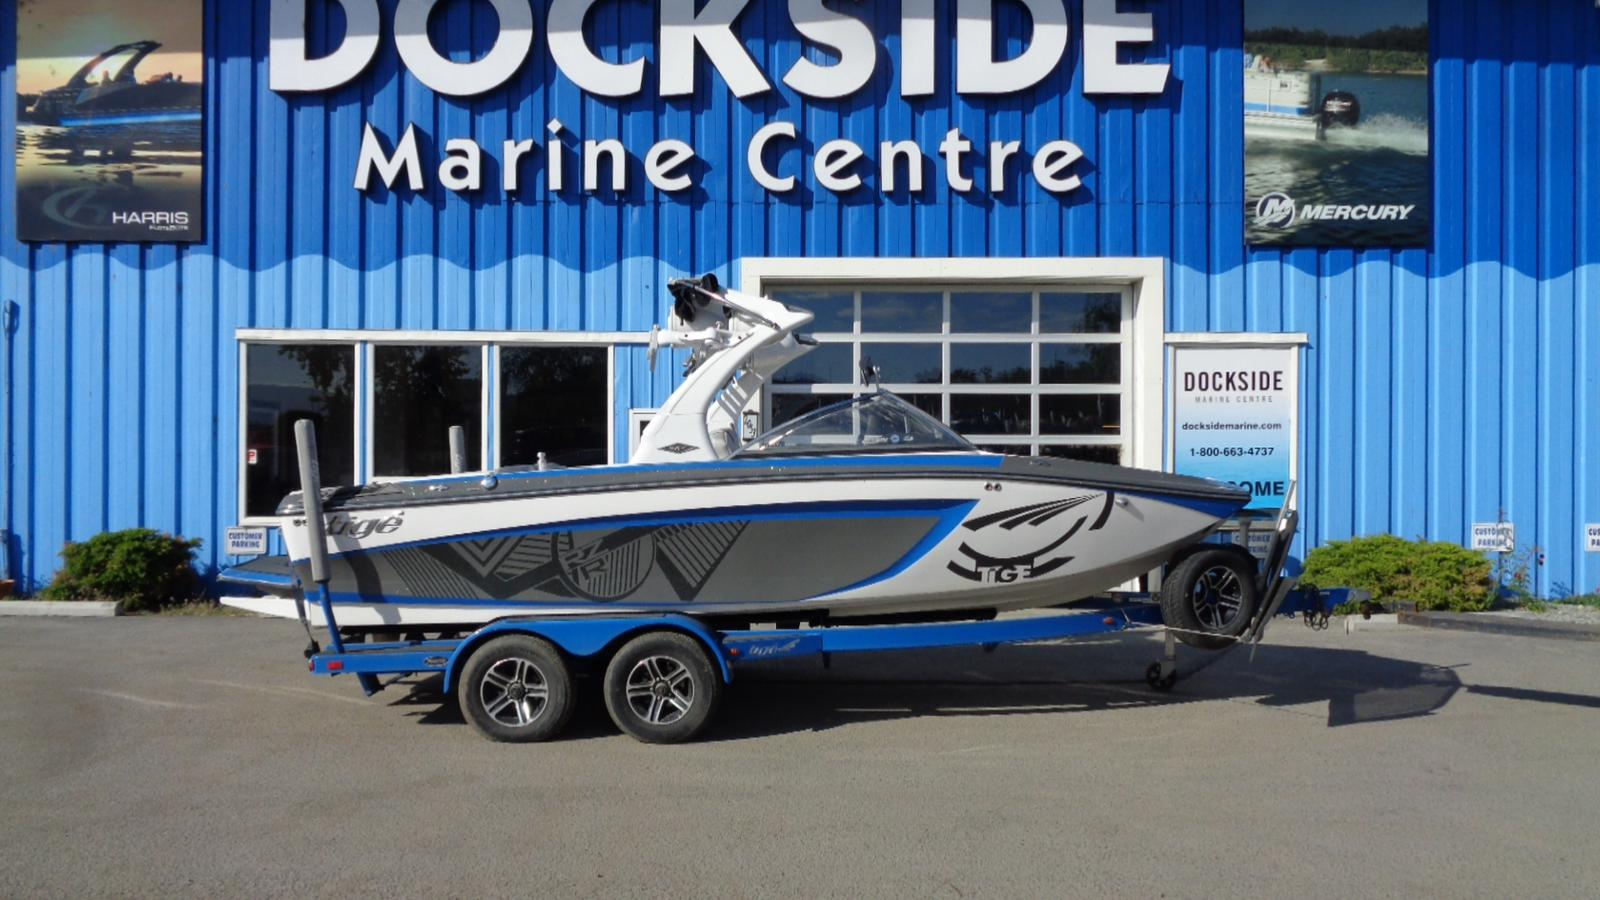 For Sale: 2015 Tige Rzr 20ft<br/>Dockside Marine Centre, LTD.